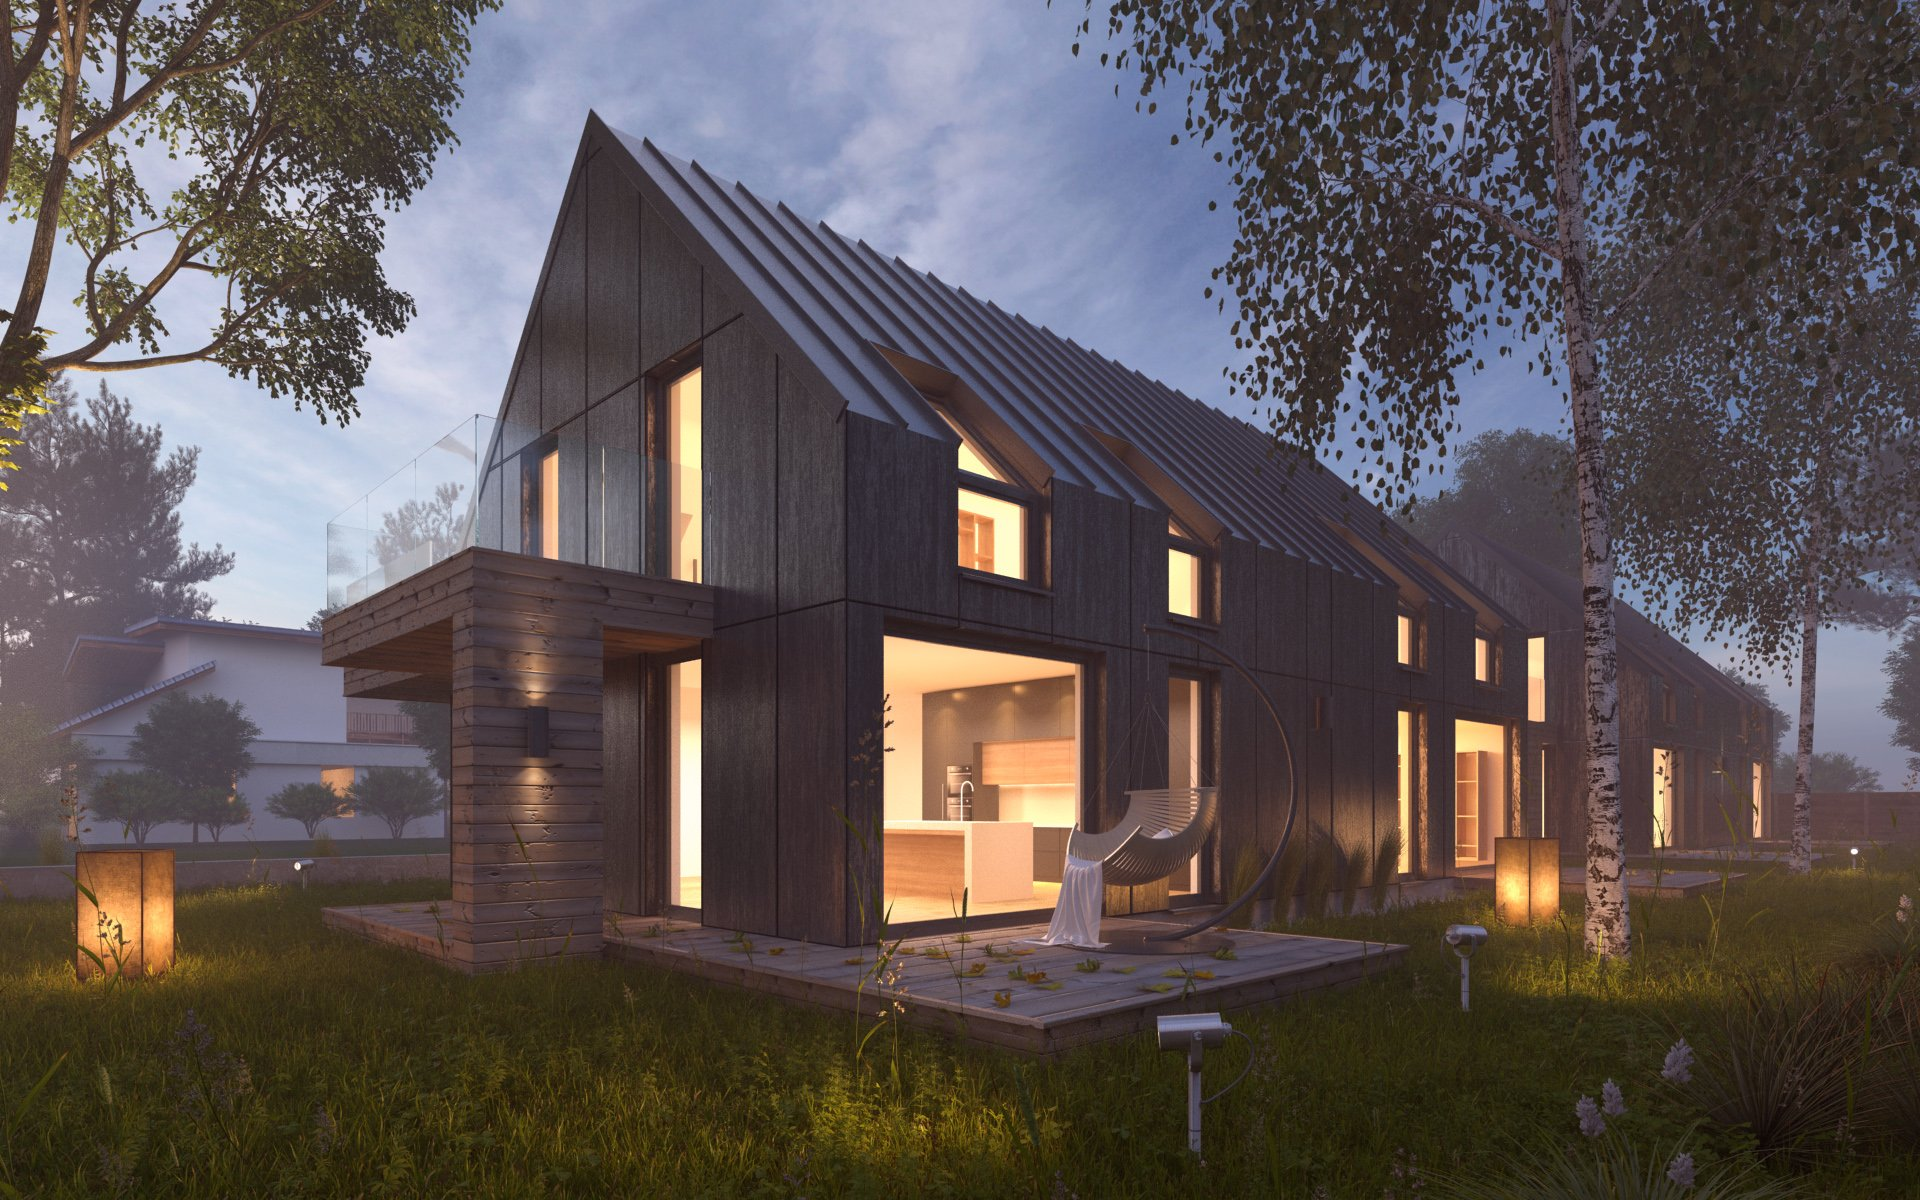 Vray night pro setup scene house architecture for Revit architecture modern house design 1